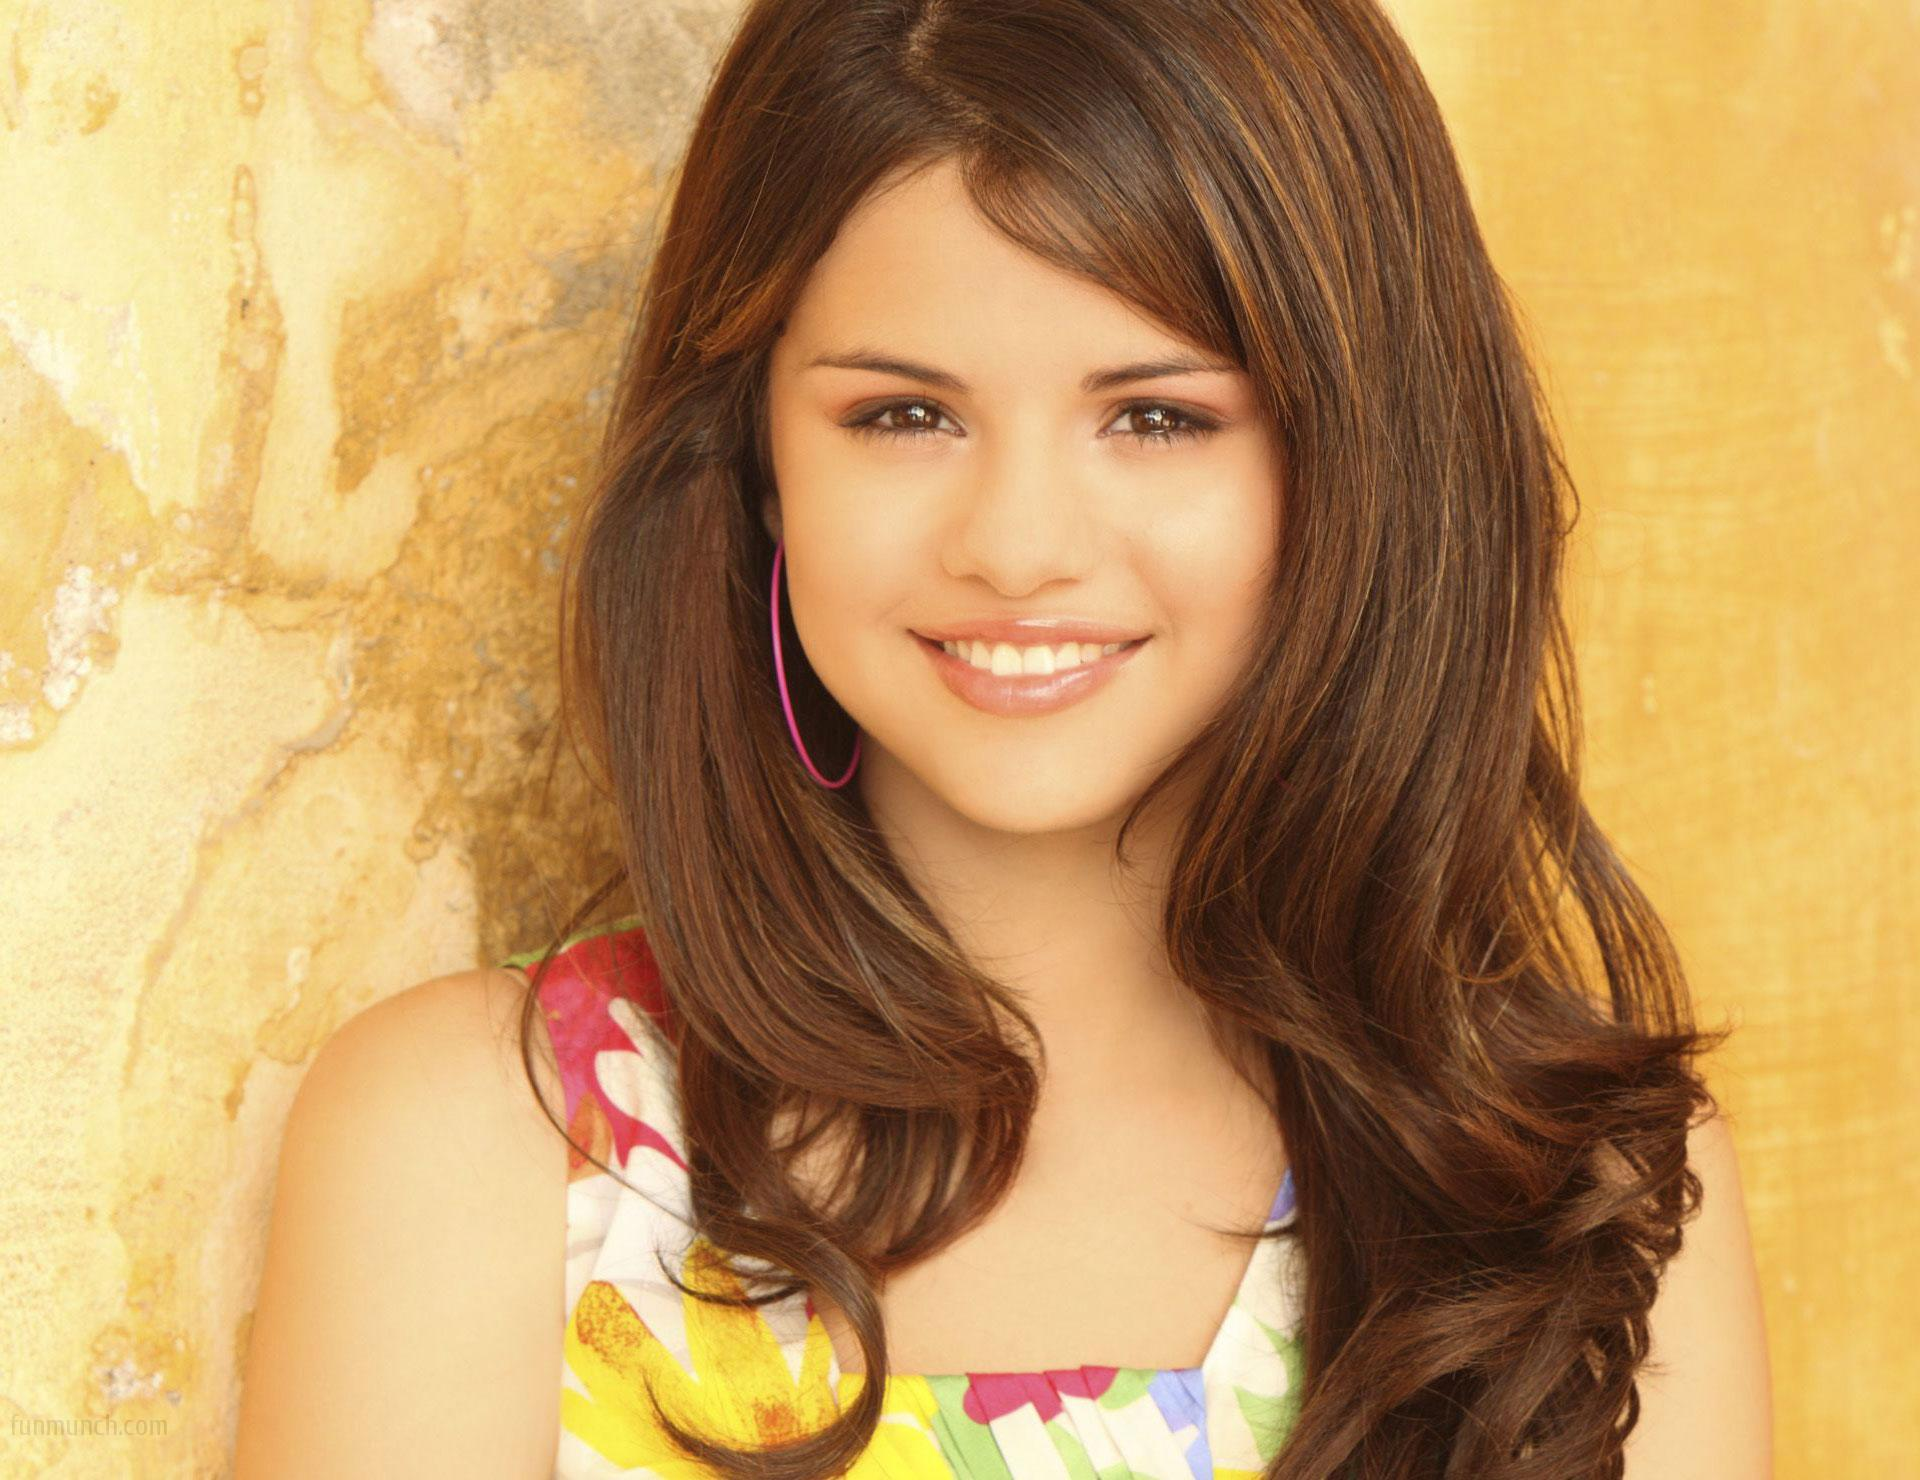 selena gomez wallpapers - wallpaper cave